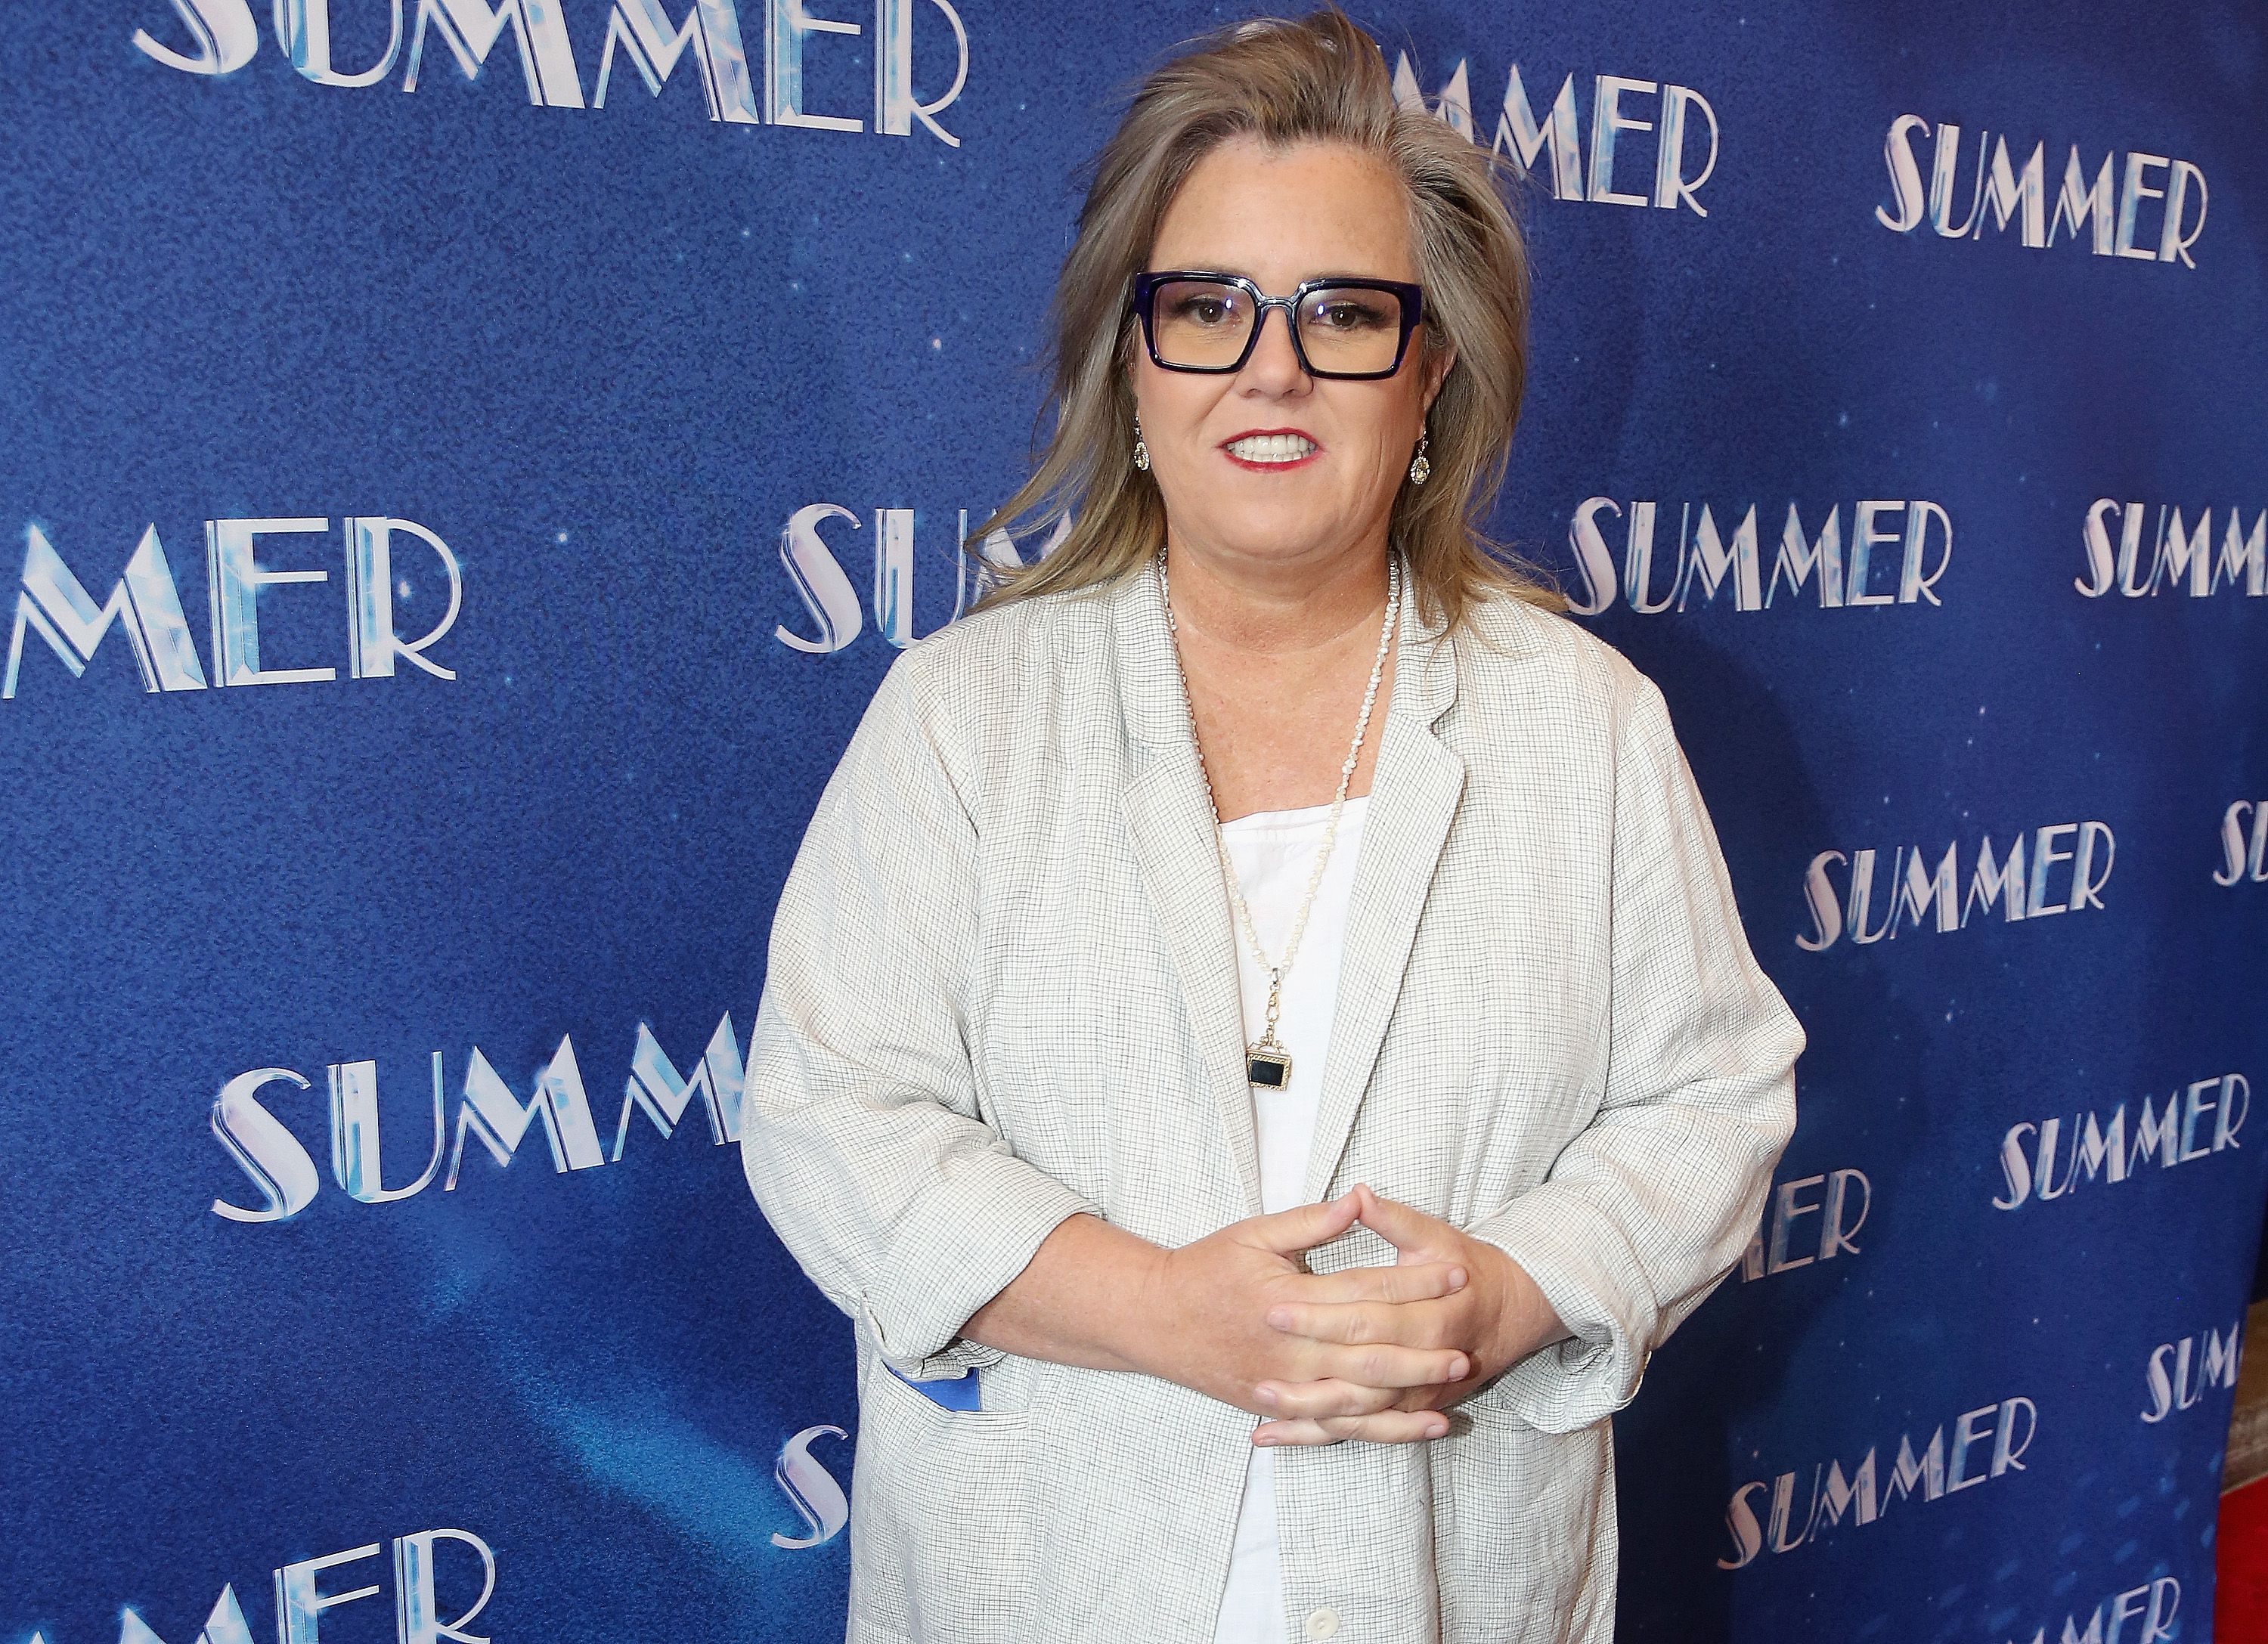 Rosie O'Donnell to revive talk show to benefit Broadway community